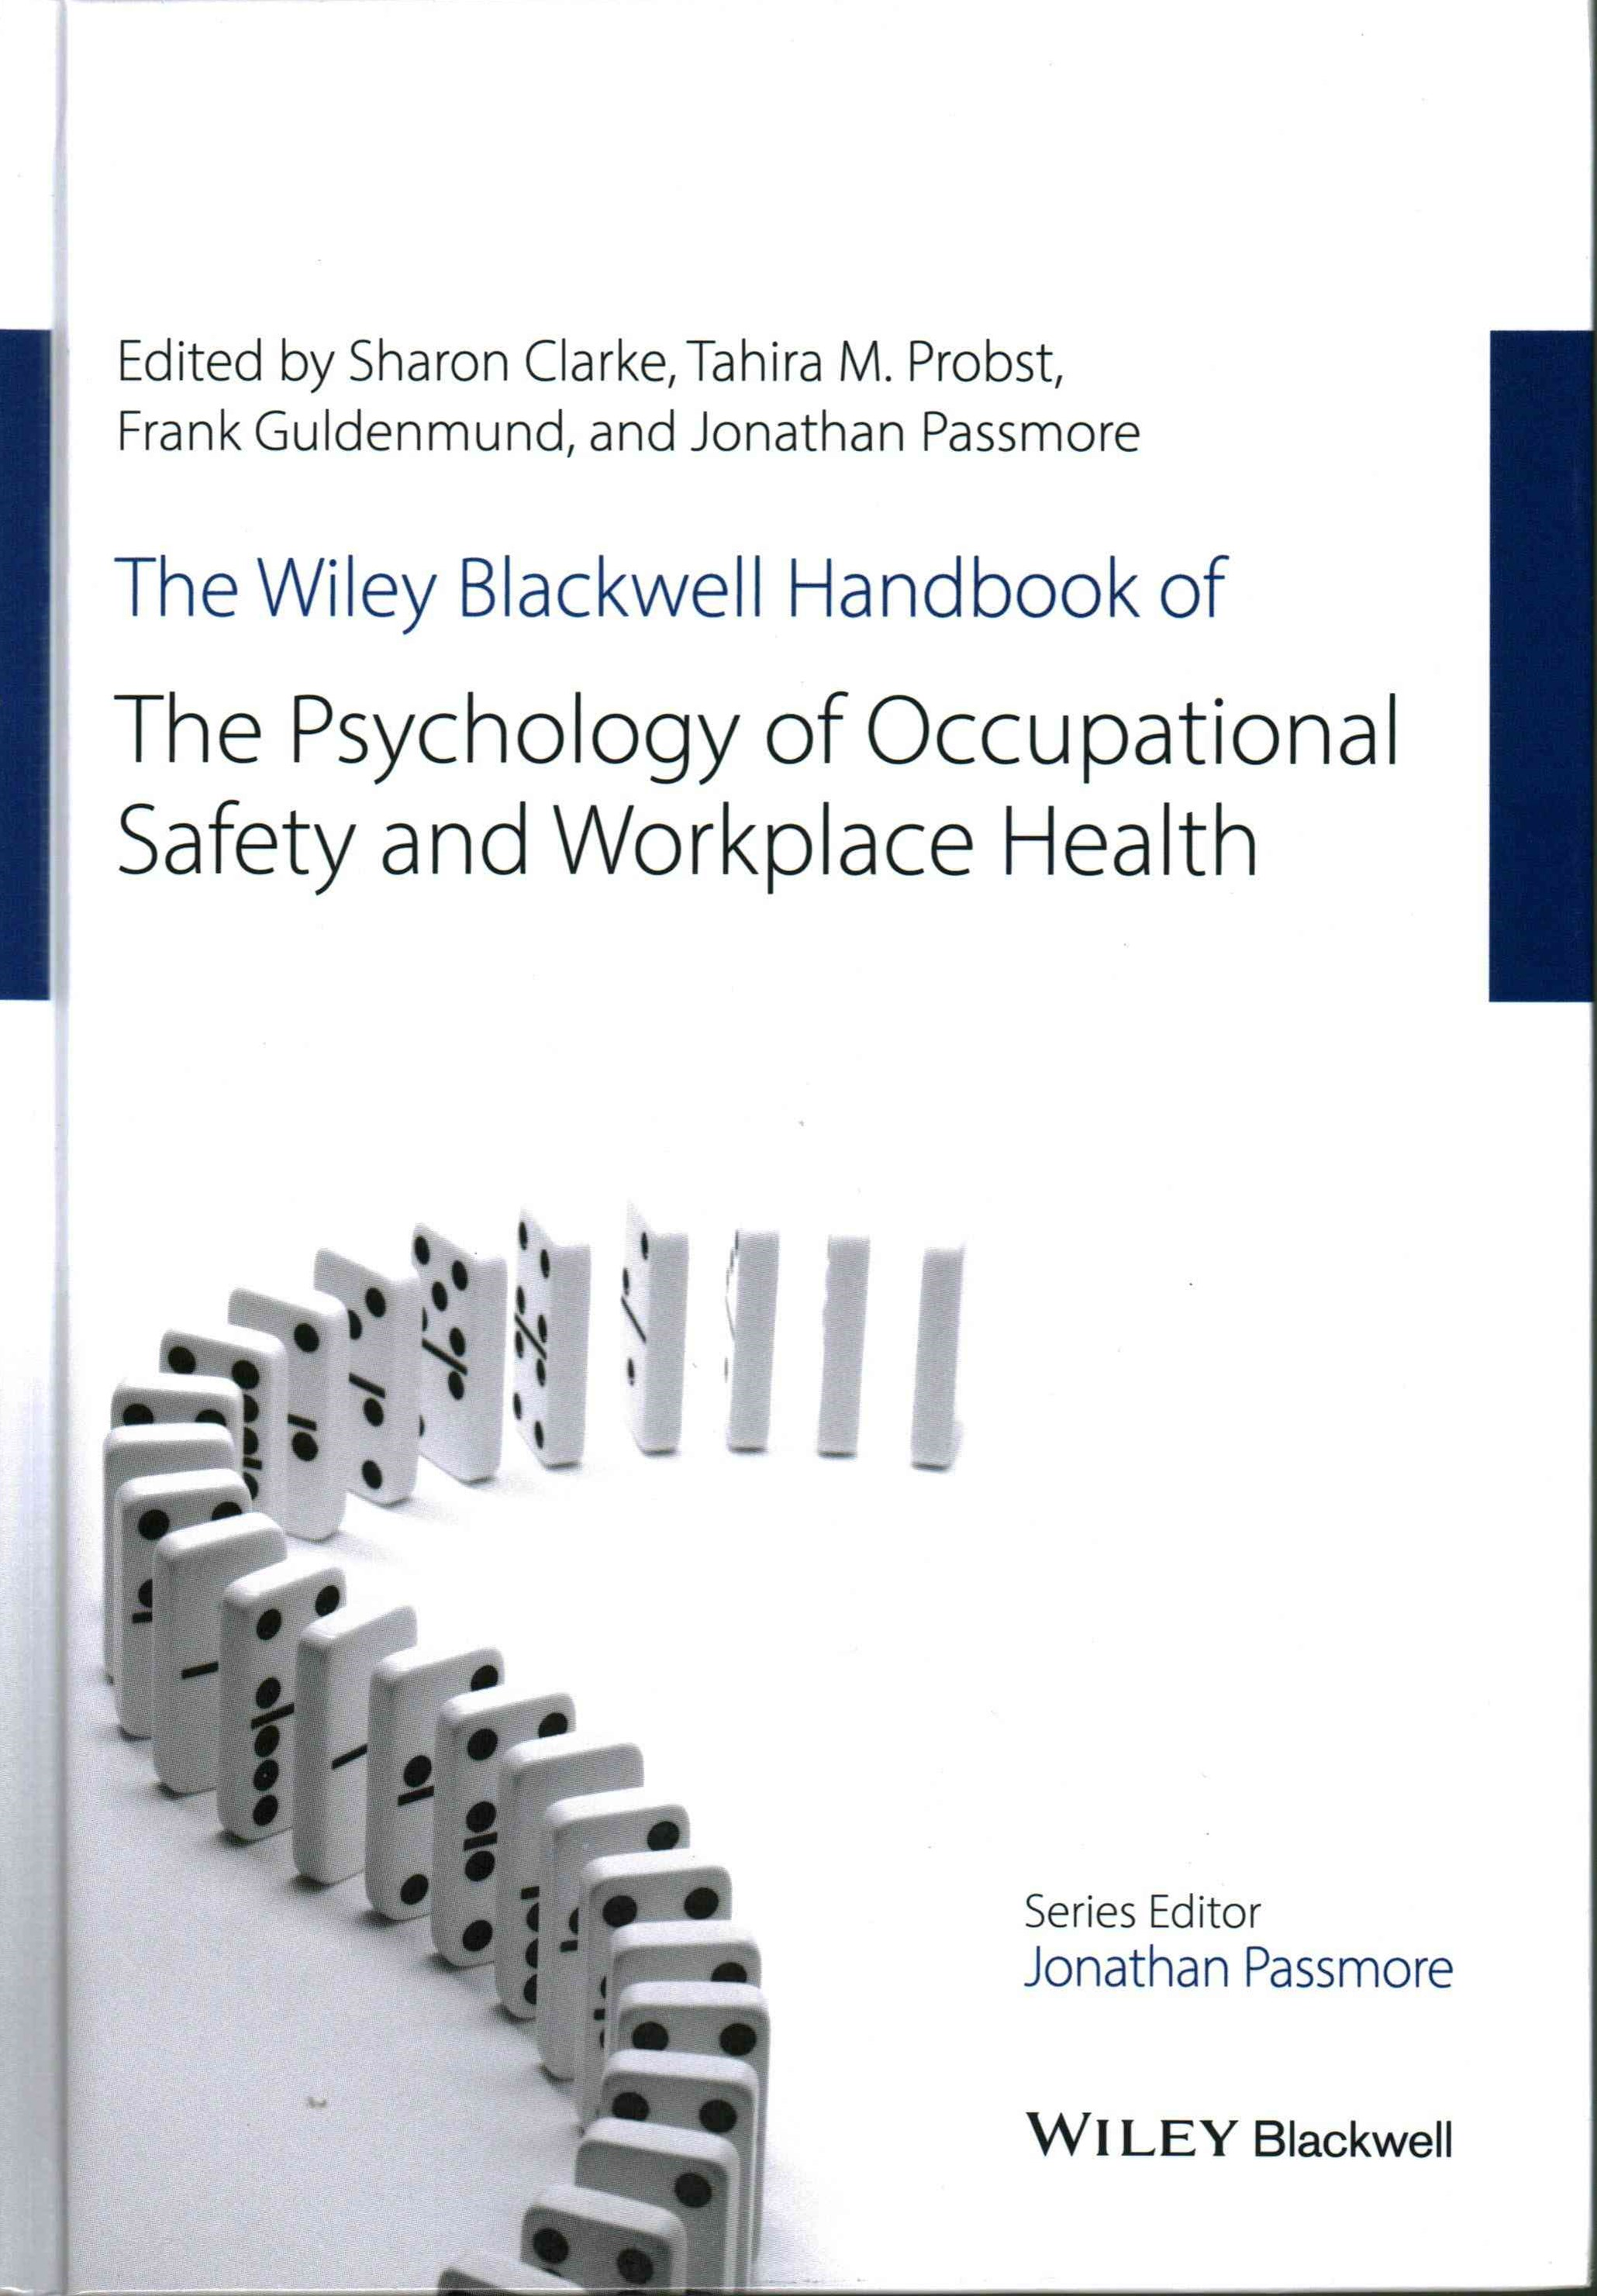 The Wiley Blackwell Handbook of the Psychology of Occupational Safety and Workplace Health